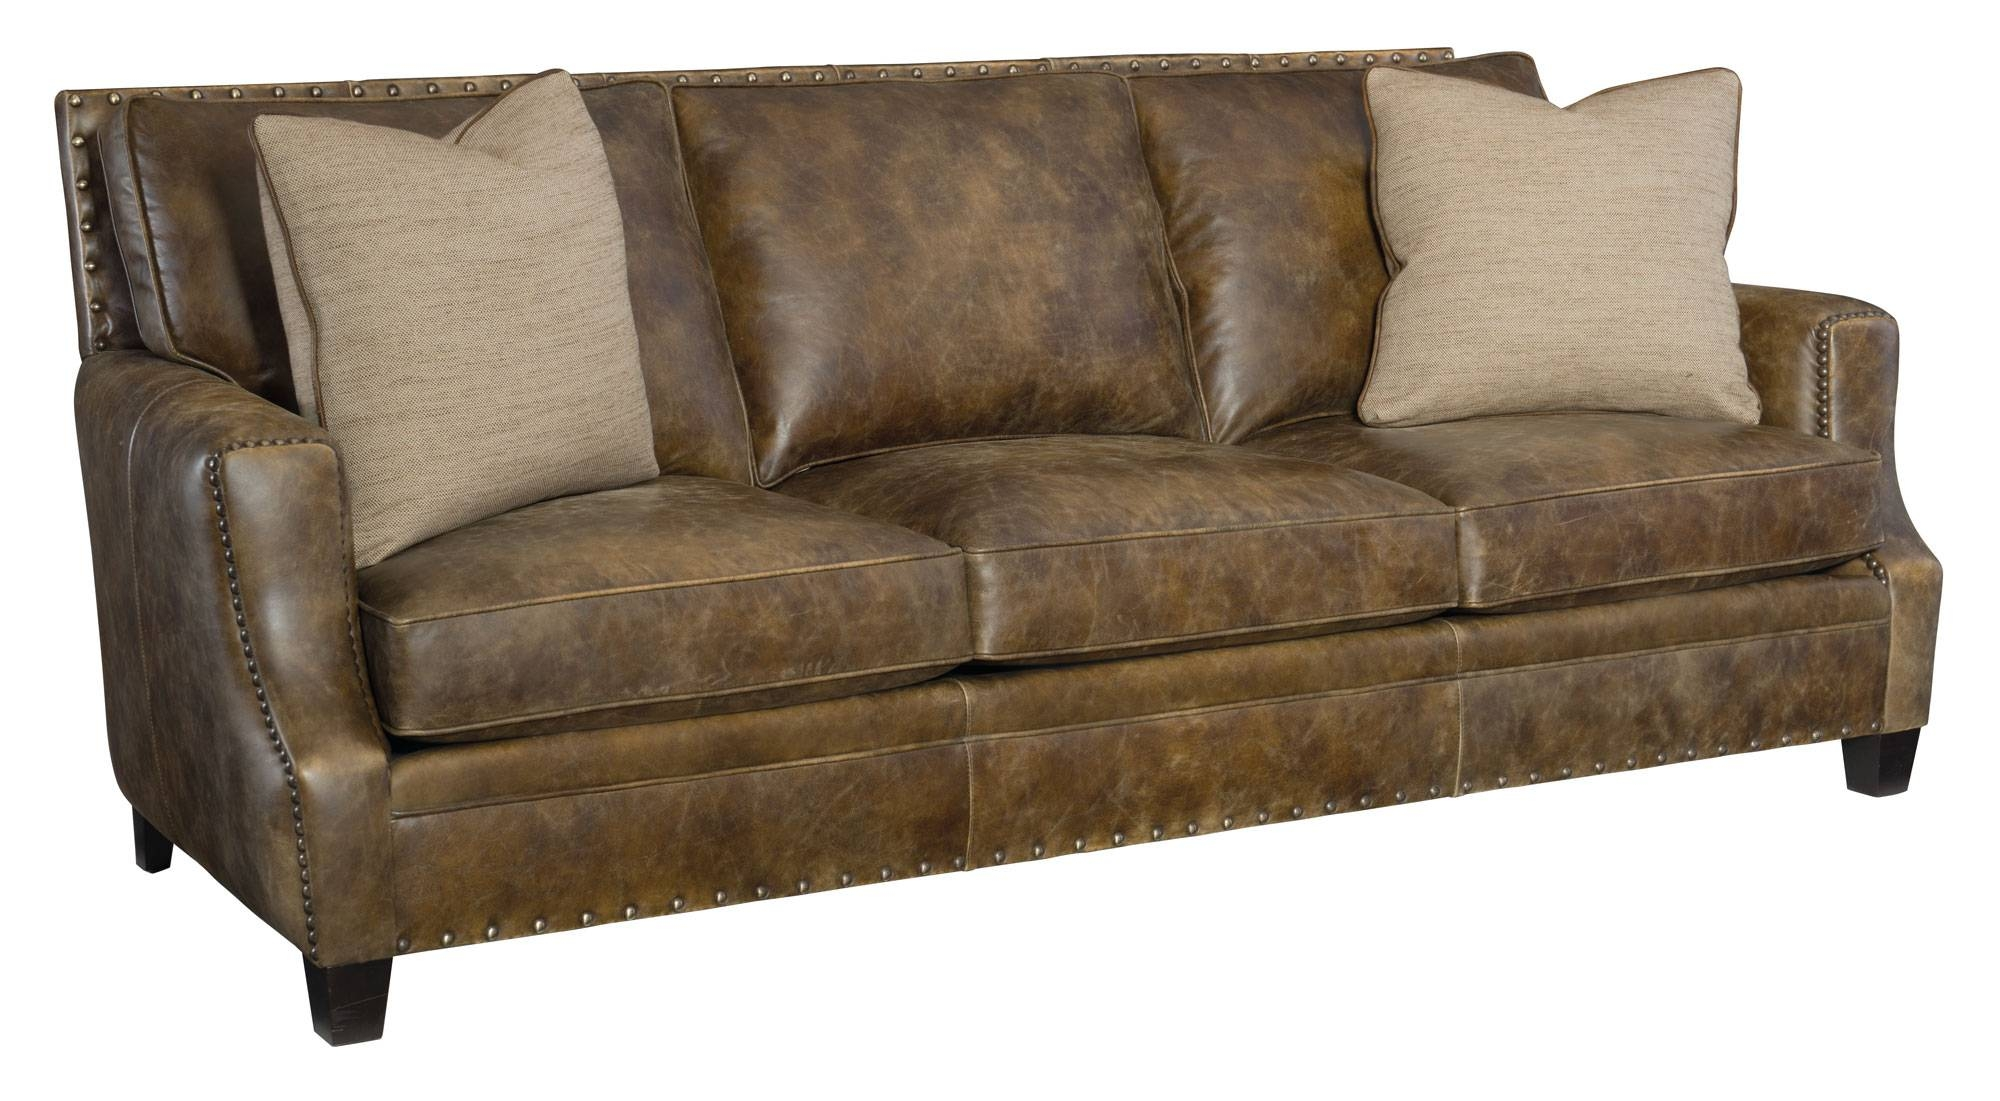 Sofas Center : Camel Back Leather Sofa And Loveseat Chippendaleack regarding Craigslist Leather Sofa (Image 24 of 30)